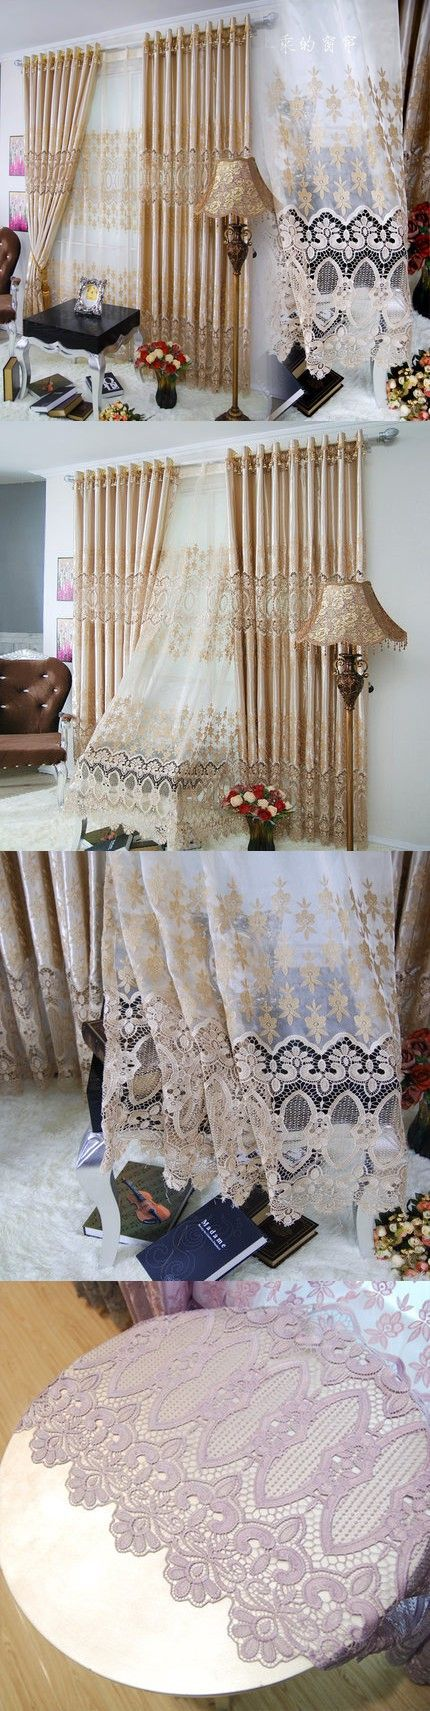 European Luxury Curtain Soluble embroidery Soft Tulle Mesh customize Window Screening For Wedding Room Free Shipping A-33 $25